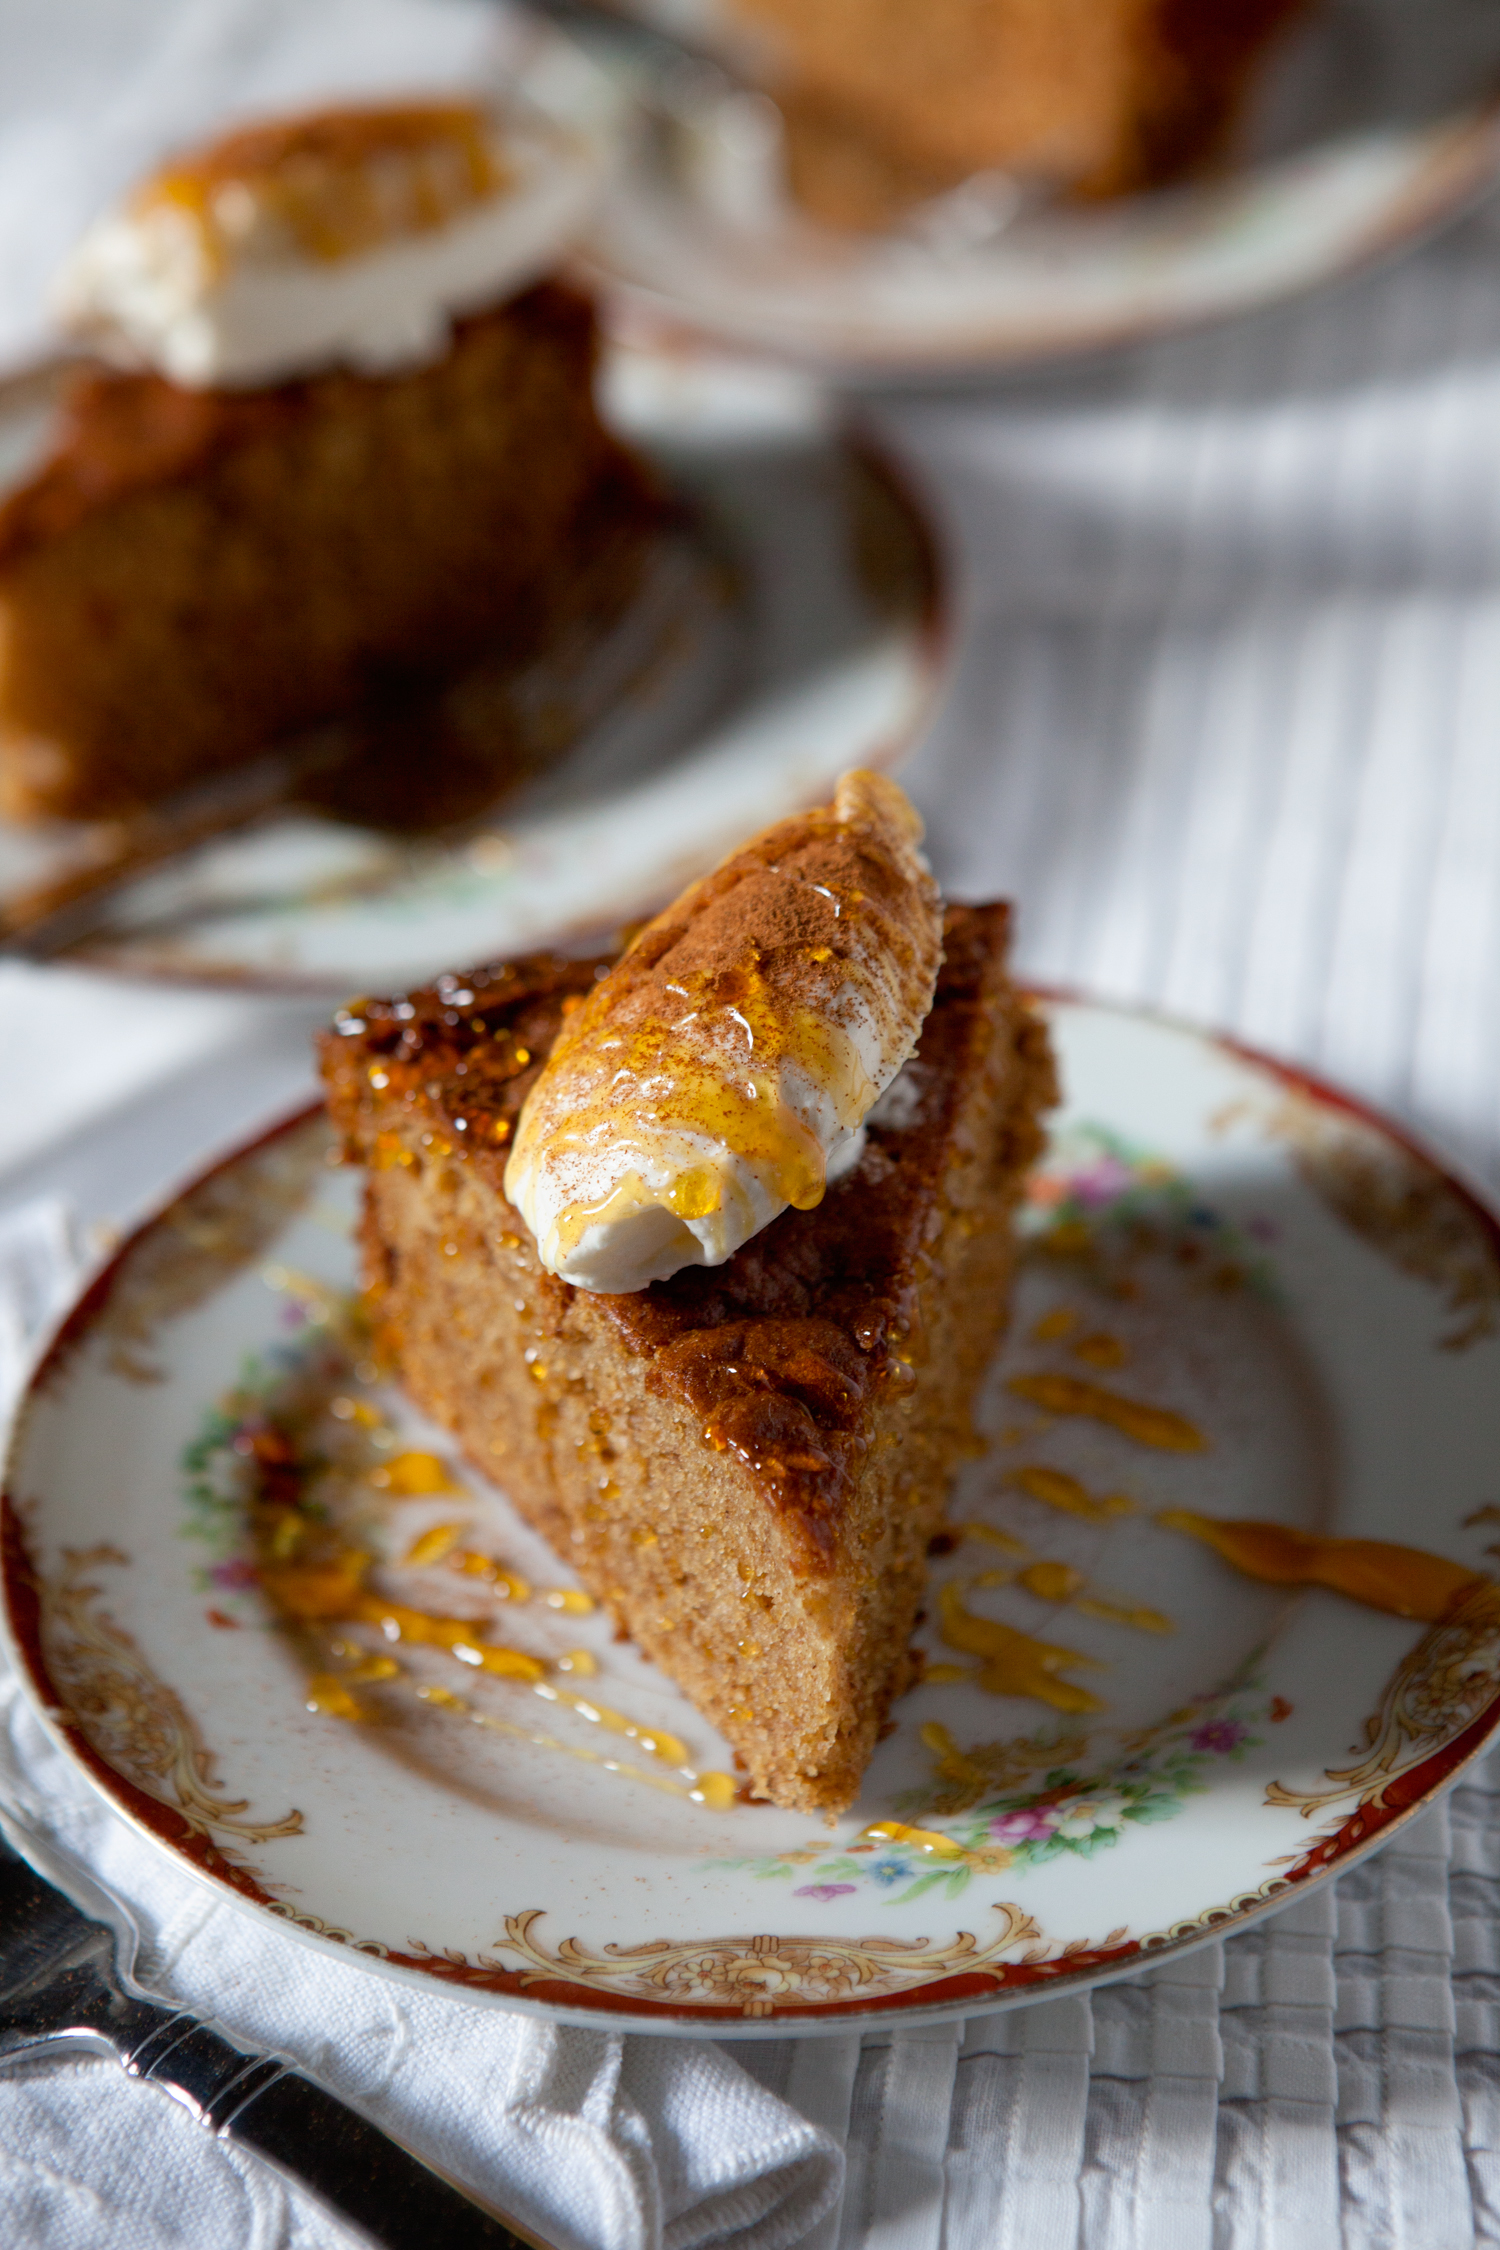 Double Gingerbread with Whipped Bourbon Half-Sour Cream. Photograph by Sarah Jane Sanders